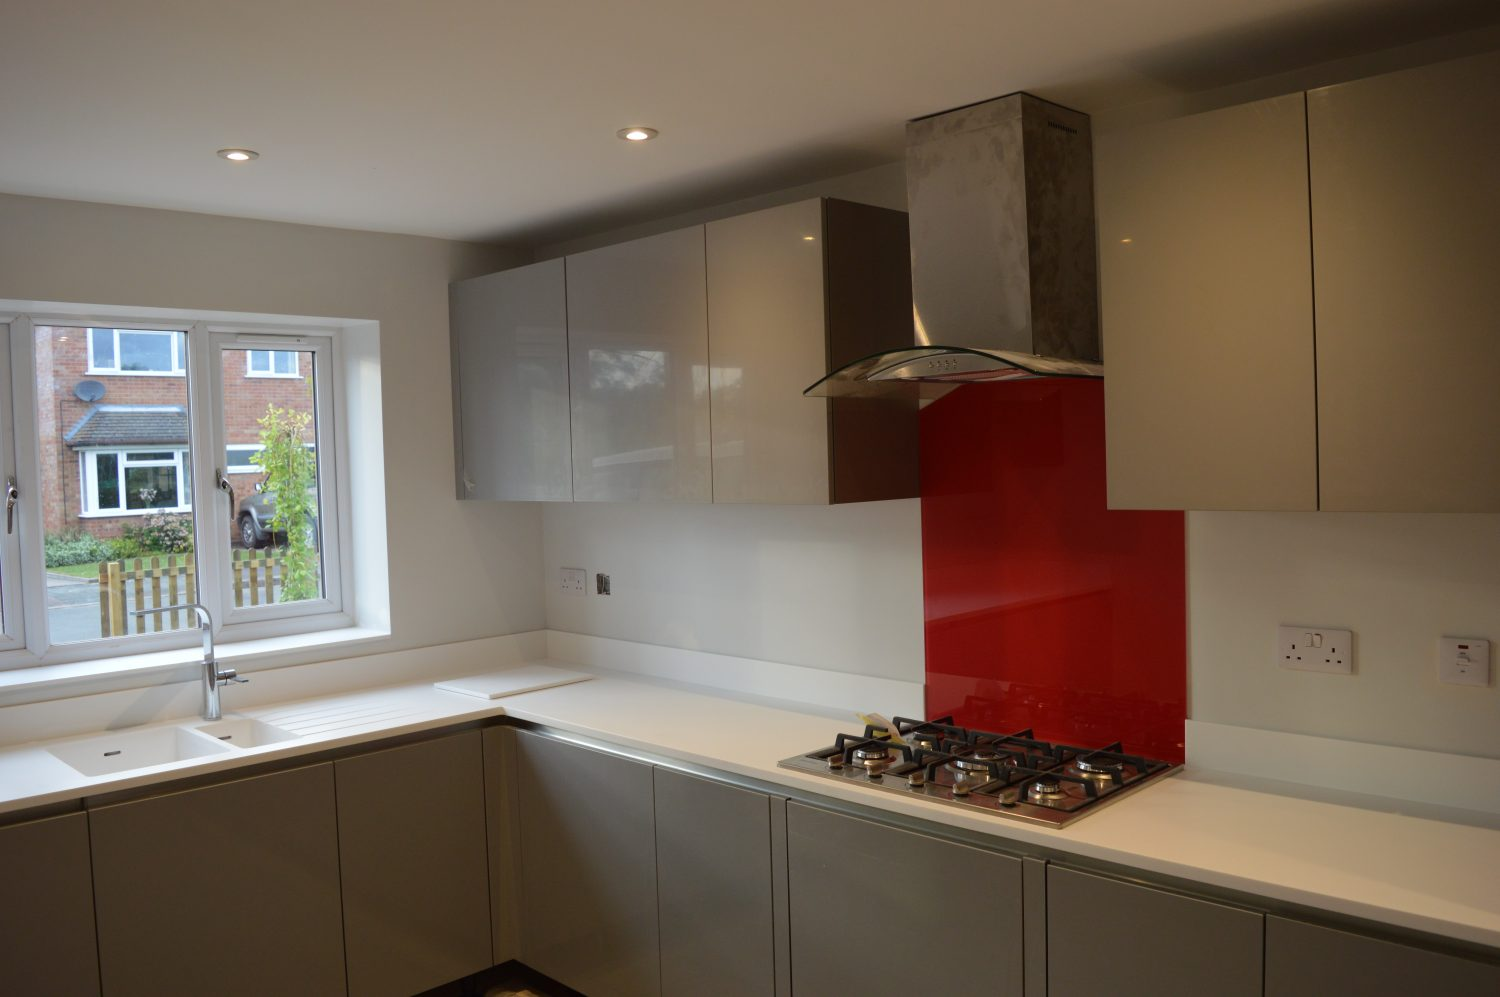 Bespoke Kitchen from George Staffordshire with Red Splashback